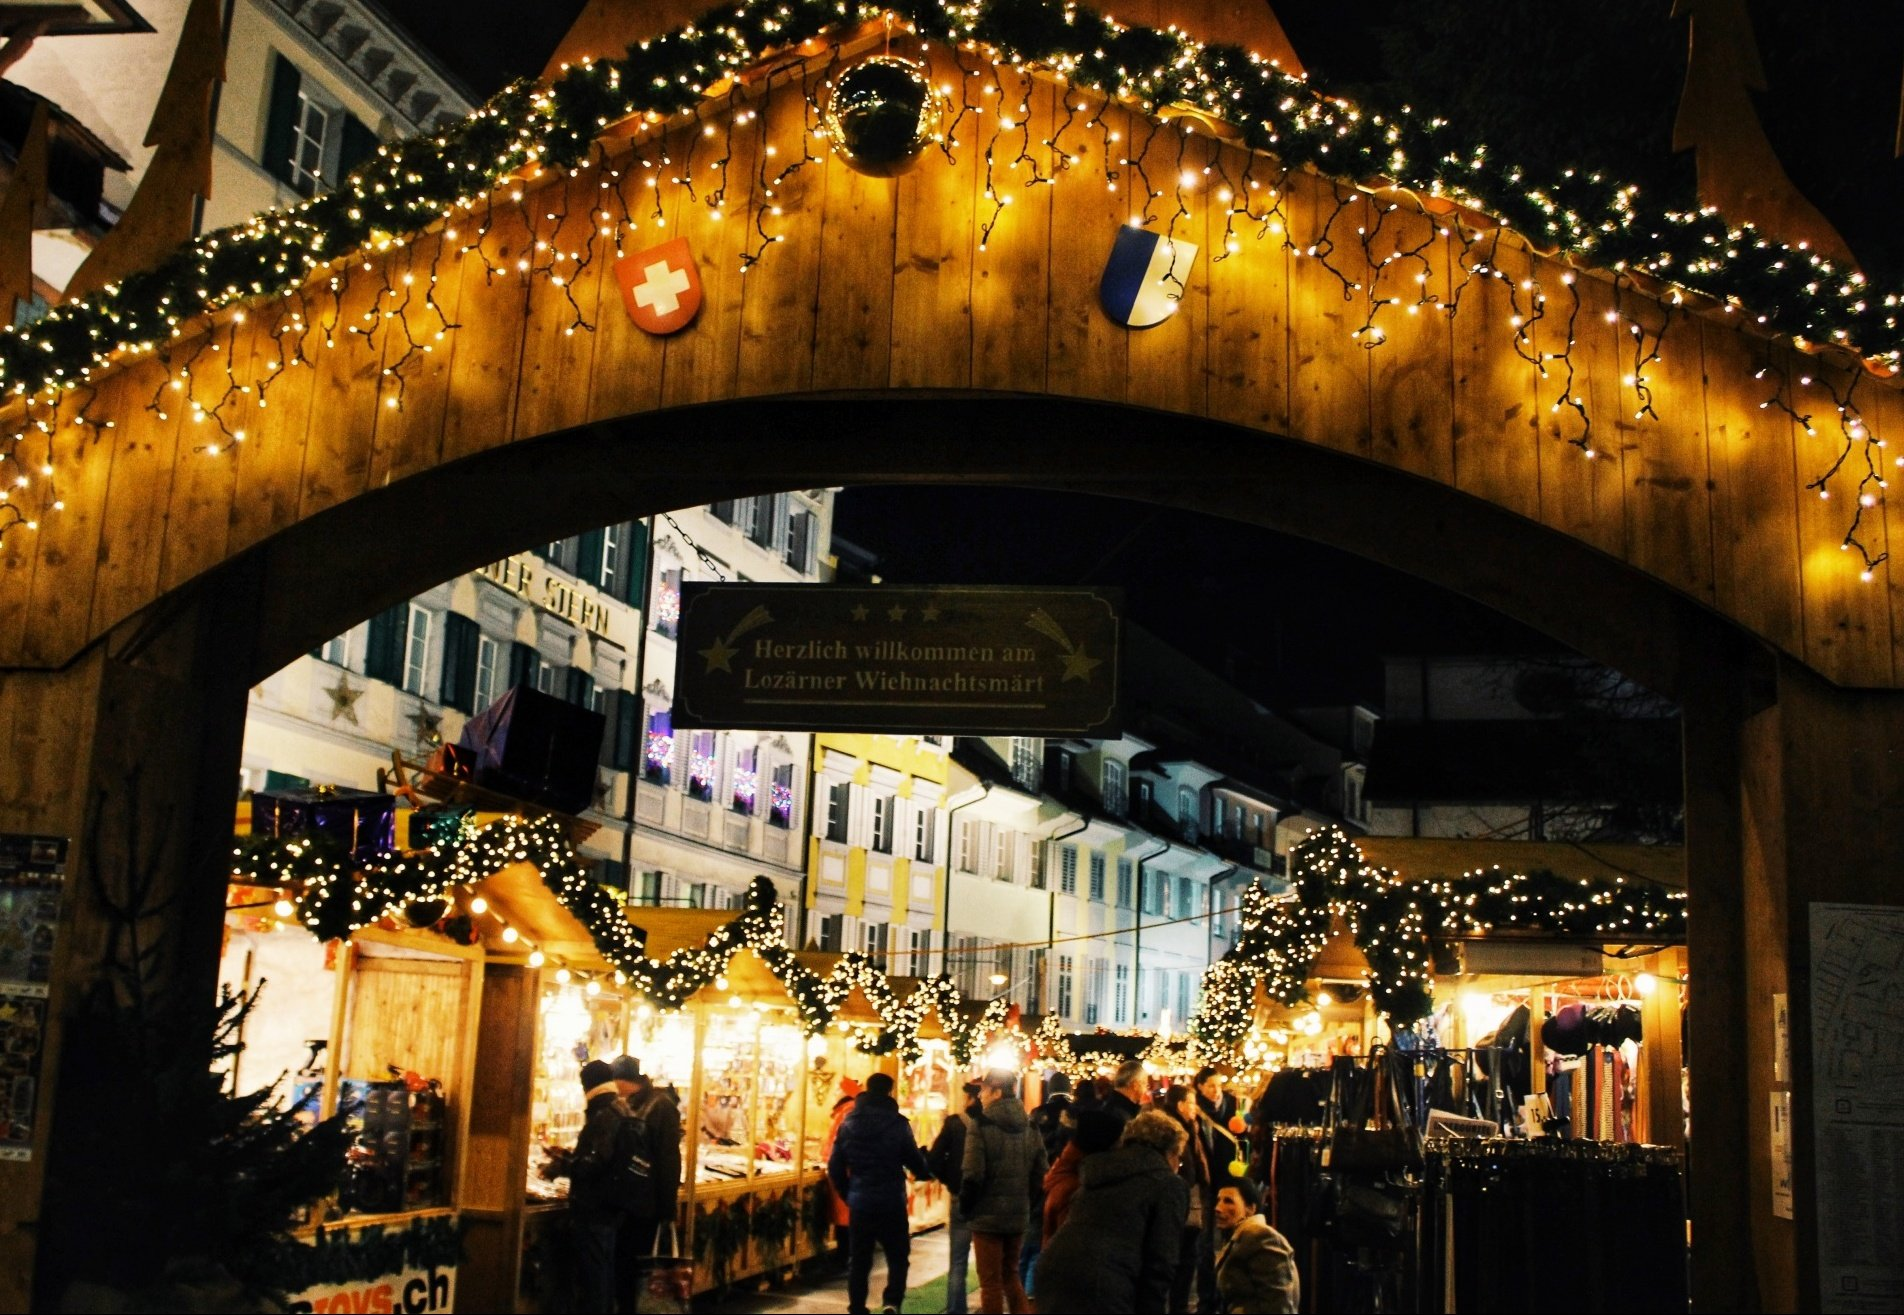 "#Christmas in #Europe: Top 5 #Destinations Dreaming of a #whiteChristmas in Europe?! Check my favorite ""Christmassy"" #towns in Europe for an epic #holiday season! #travel #blog #newyear"